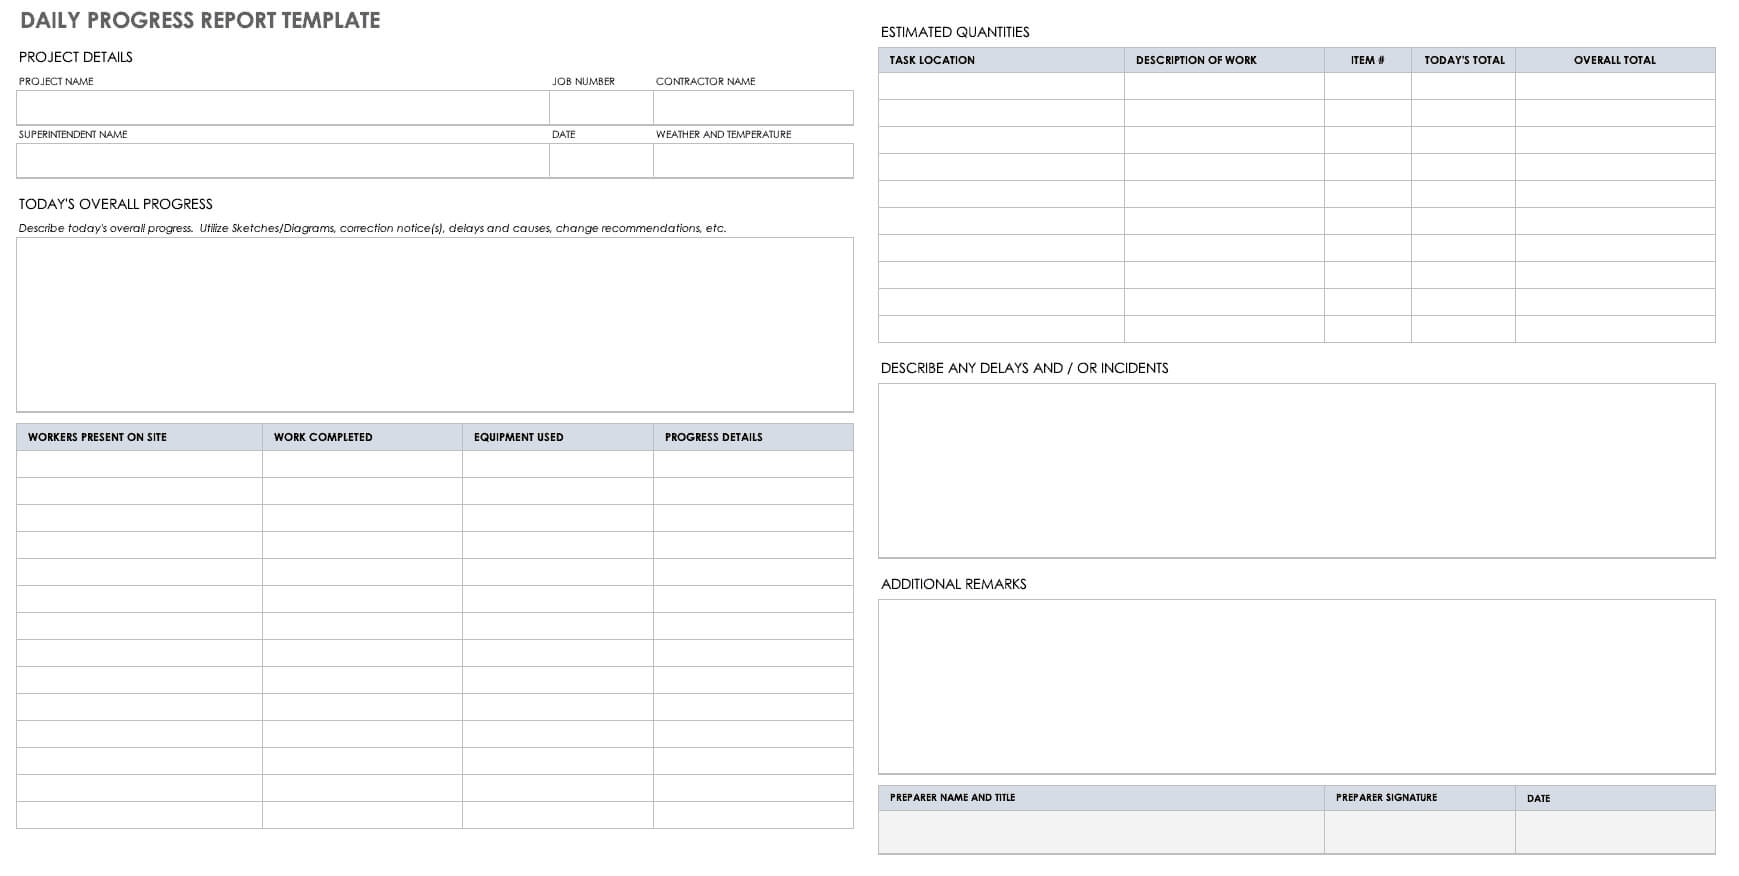 010 Template Ideas Ic Daily Project Progress Report Format For It Progress Report Template